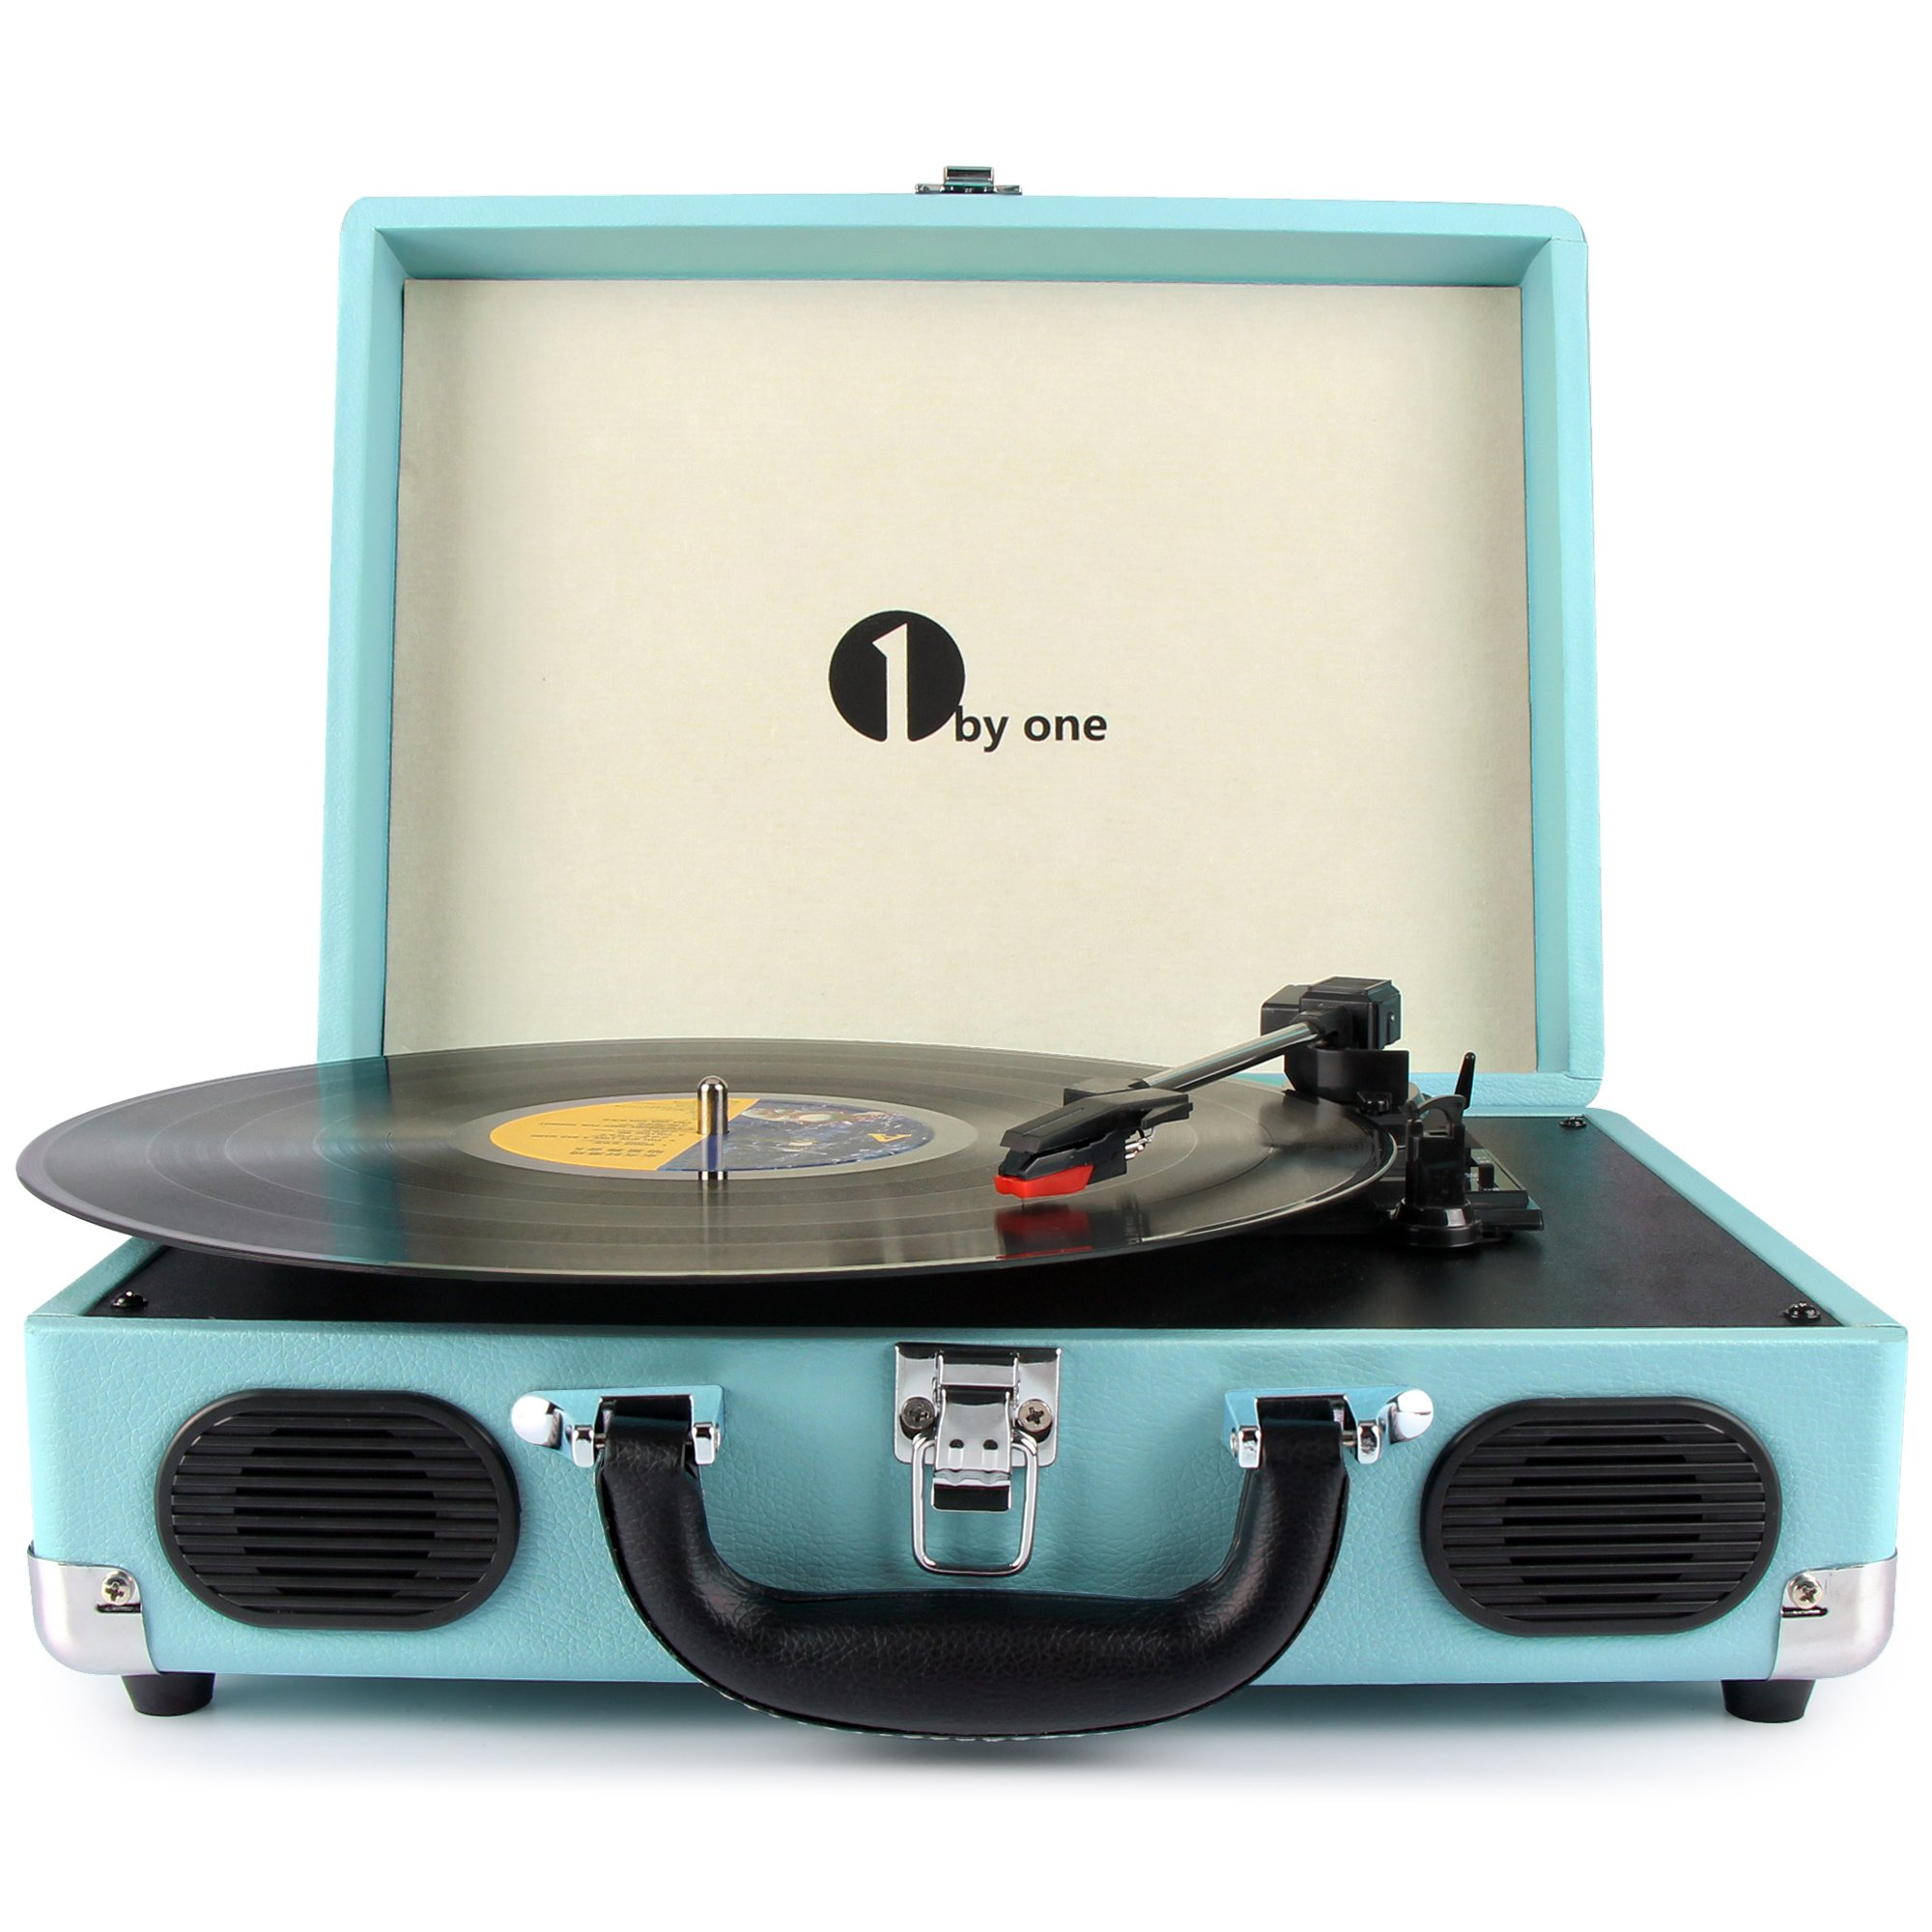 1byone Belt Driven 3 Speed Portable Stereo Turntable with Built in Speakers, Supports RCA Output, Headphone Jack, MP3, Mobile Phones Music Playback, Turquoise by 1byone